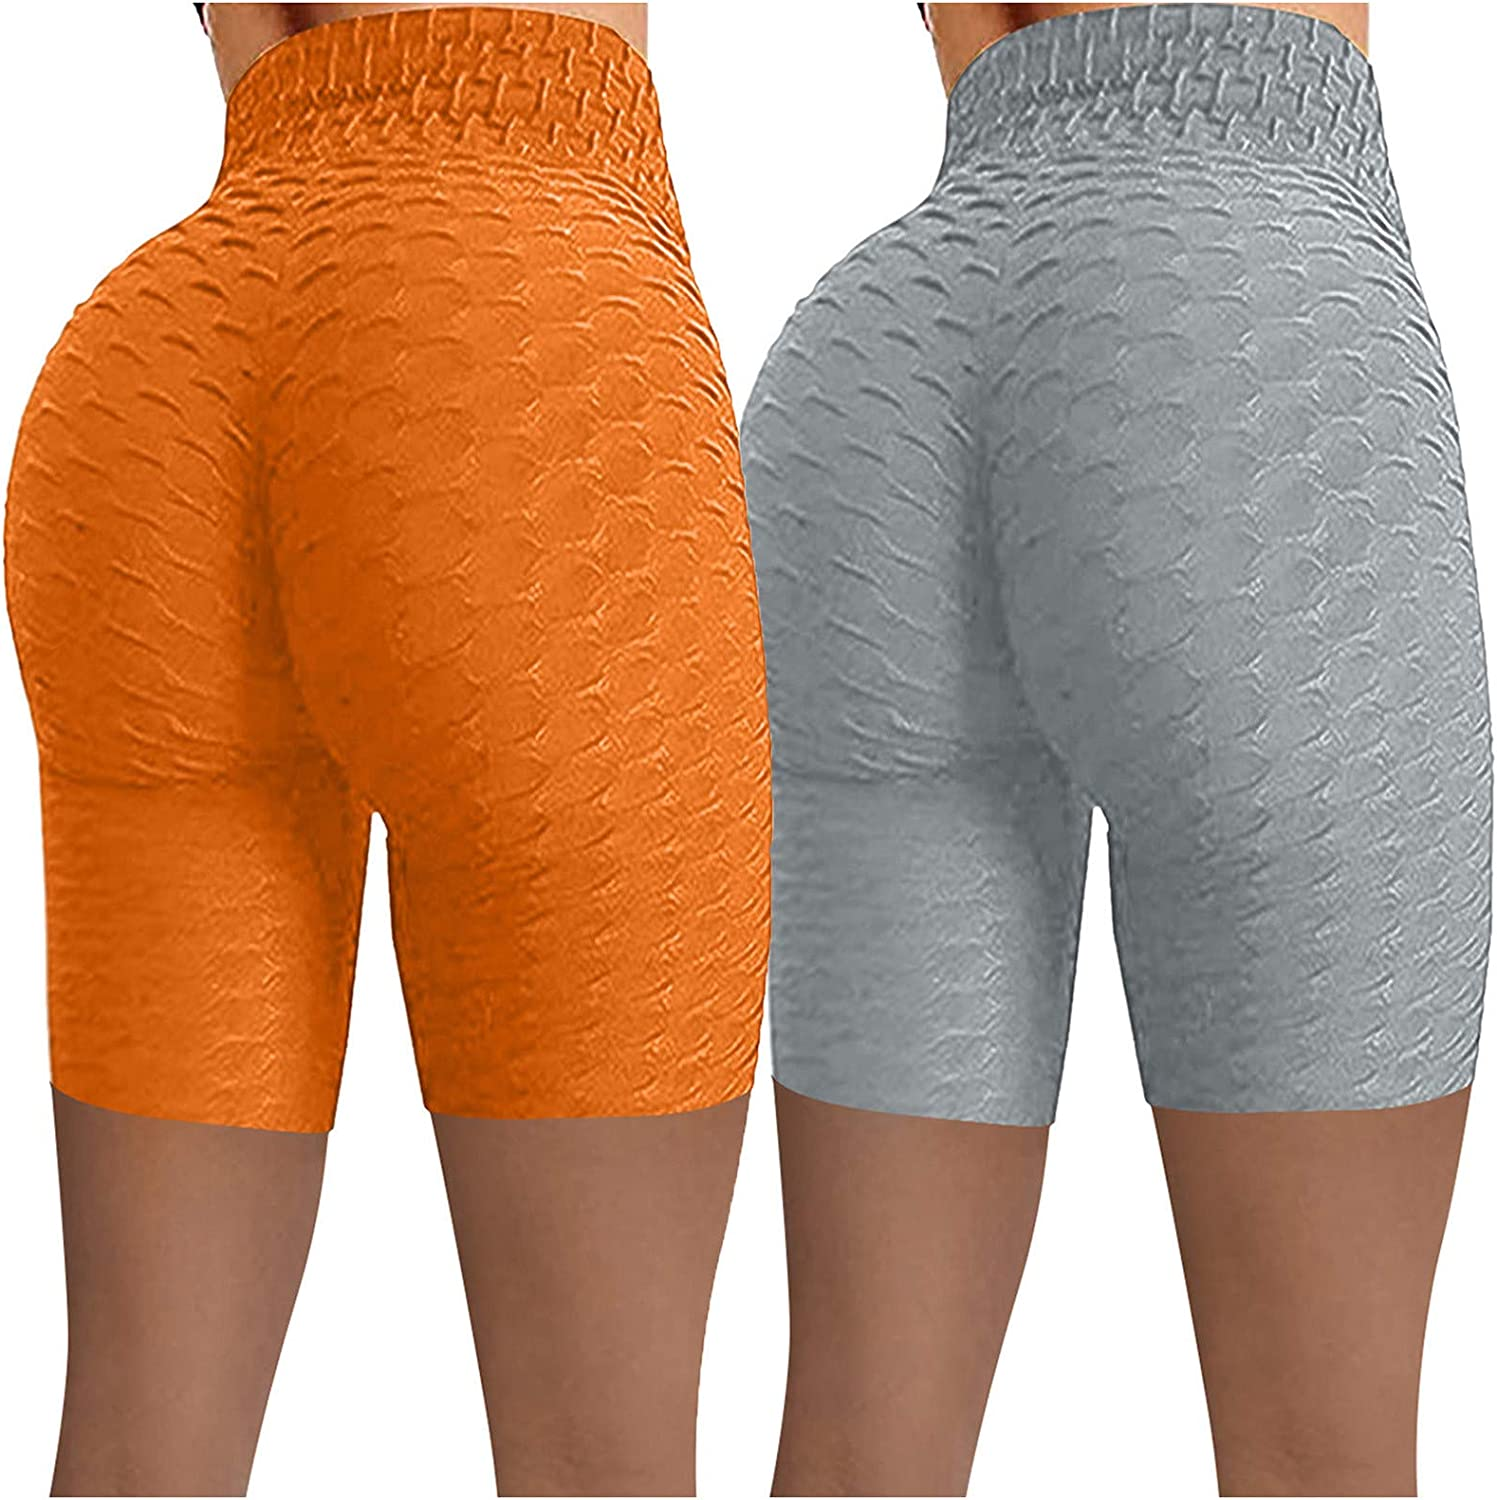 2 Pack Athletic Shorts for Women,Women's Scrunch Booty Ruched Butt Lifting Workout Biker Yoga Shorts Gym Short Leggings